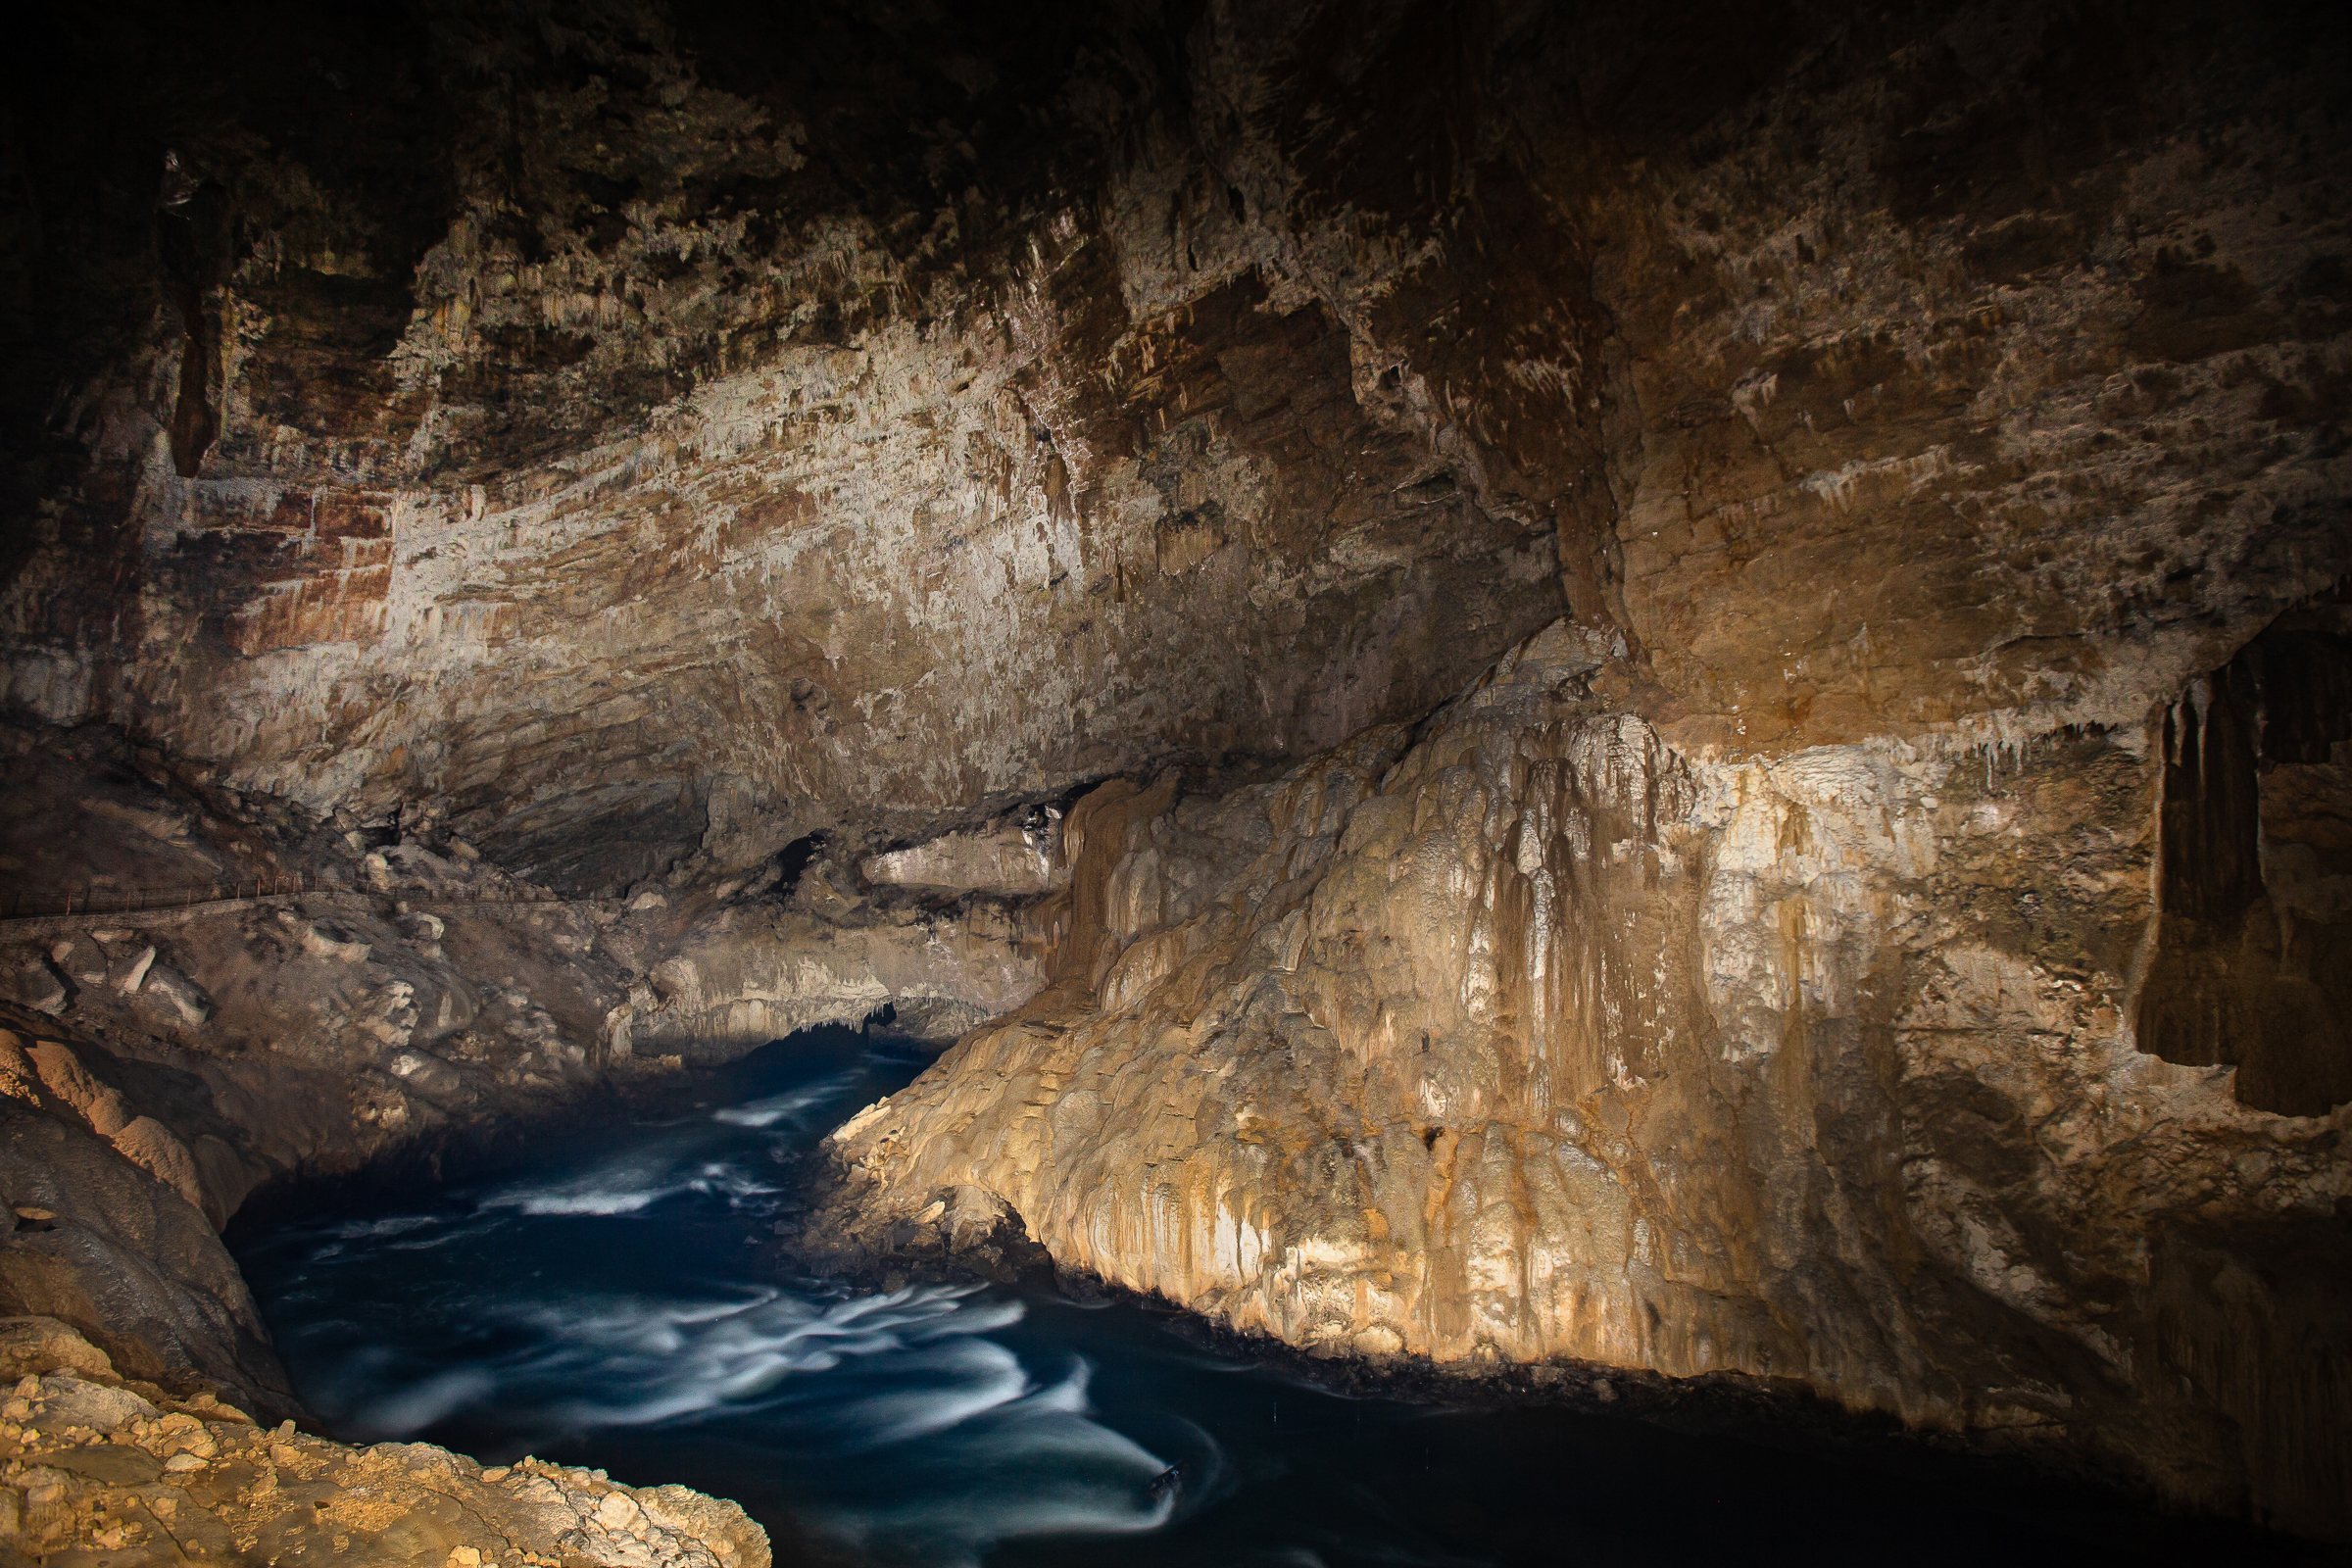 Planina Cave, one location where white olms live, contains the confluence of two major subterranean rivers.